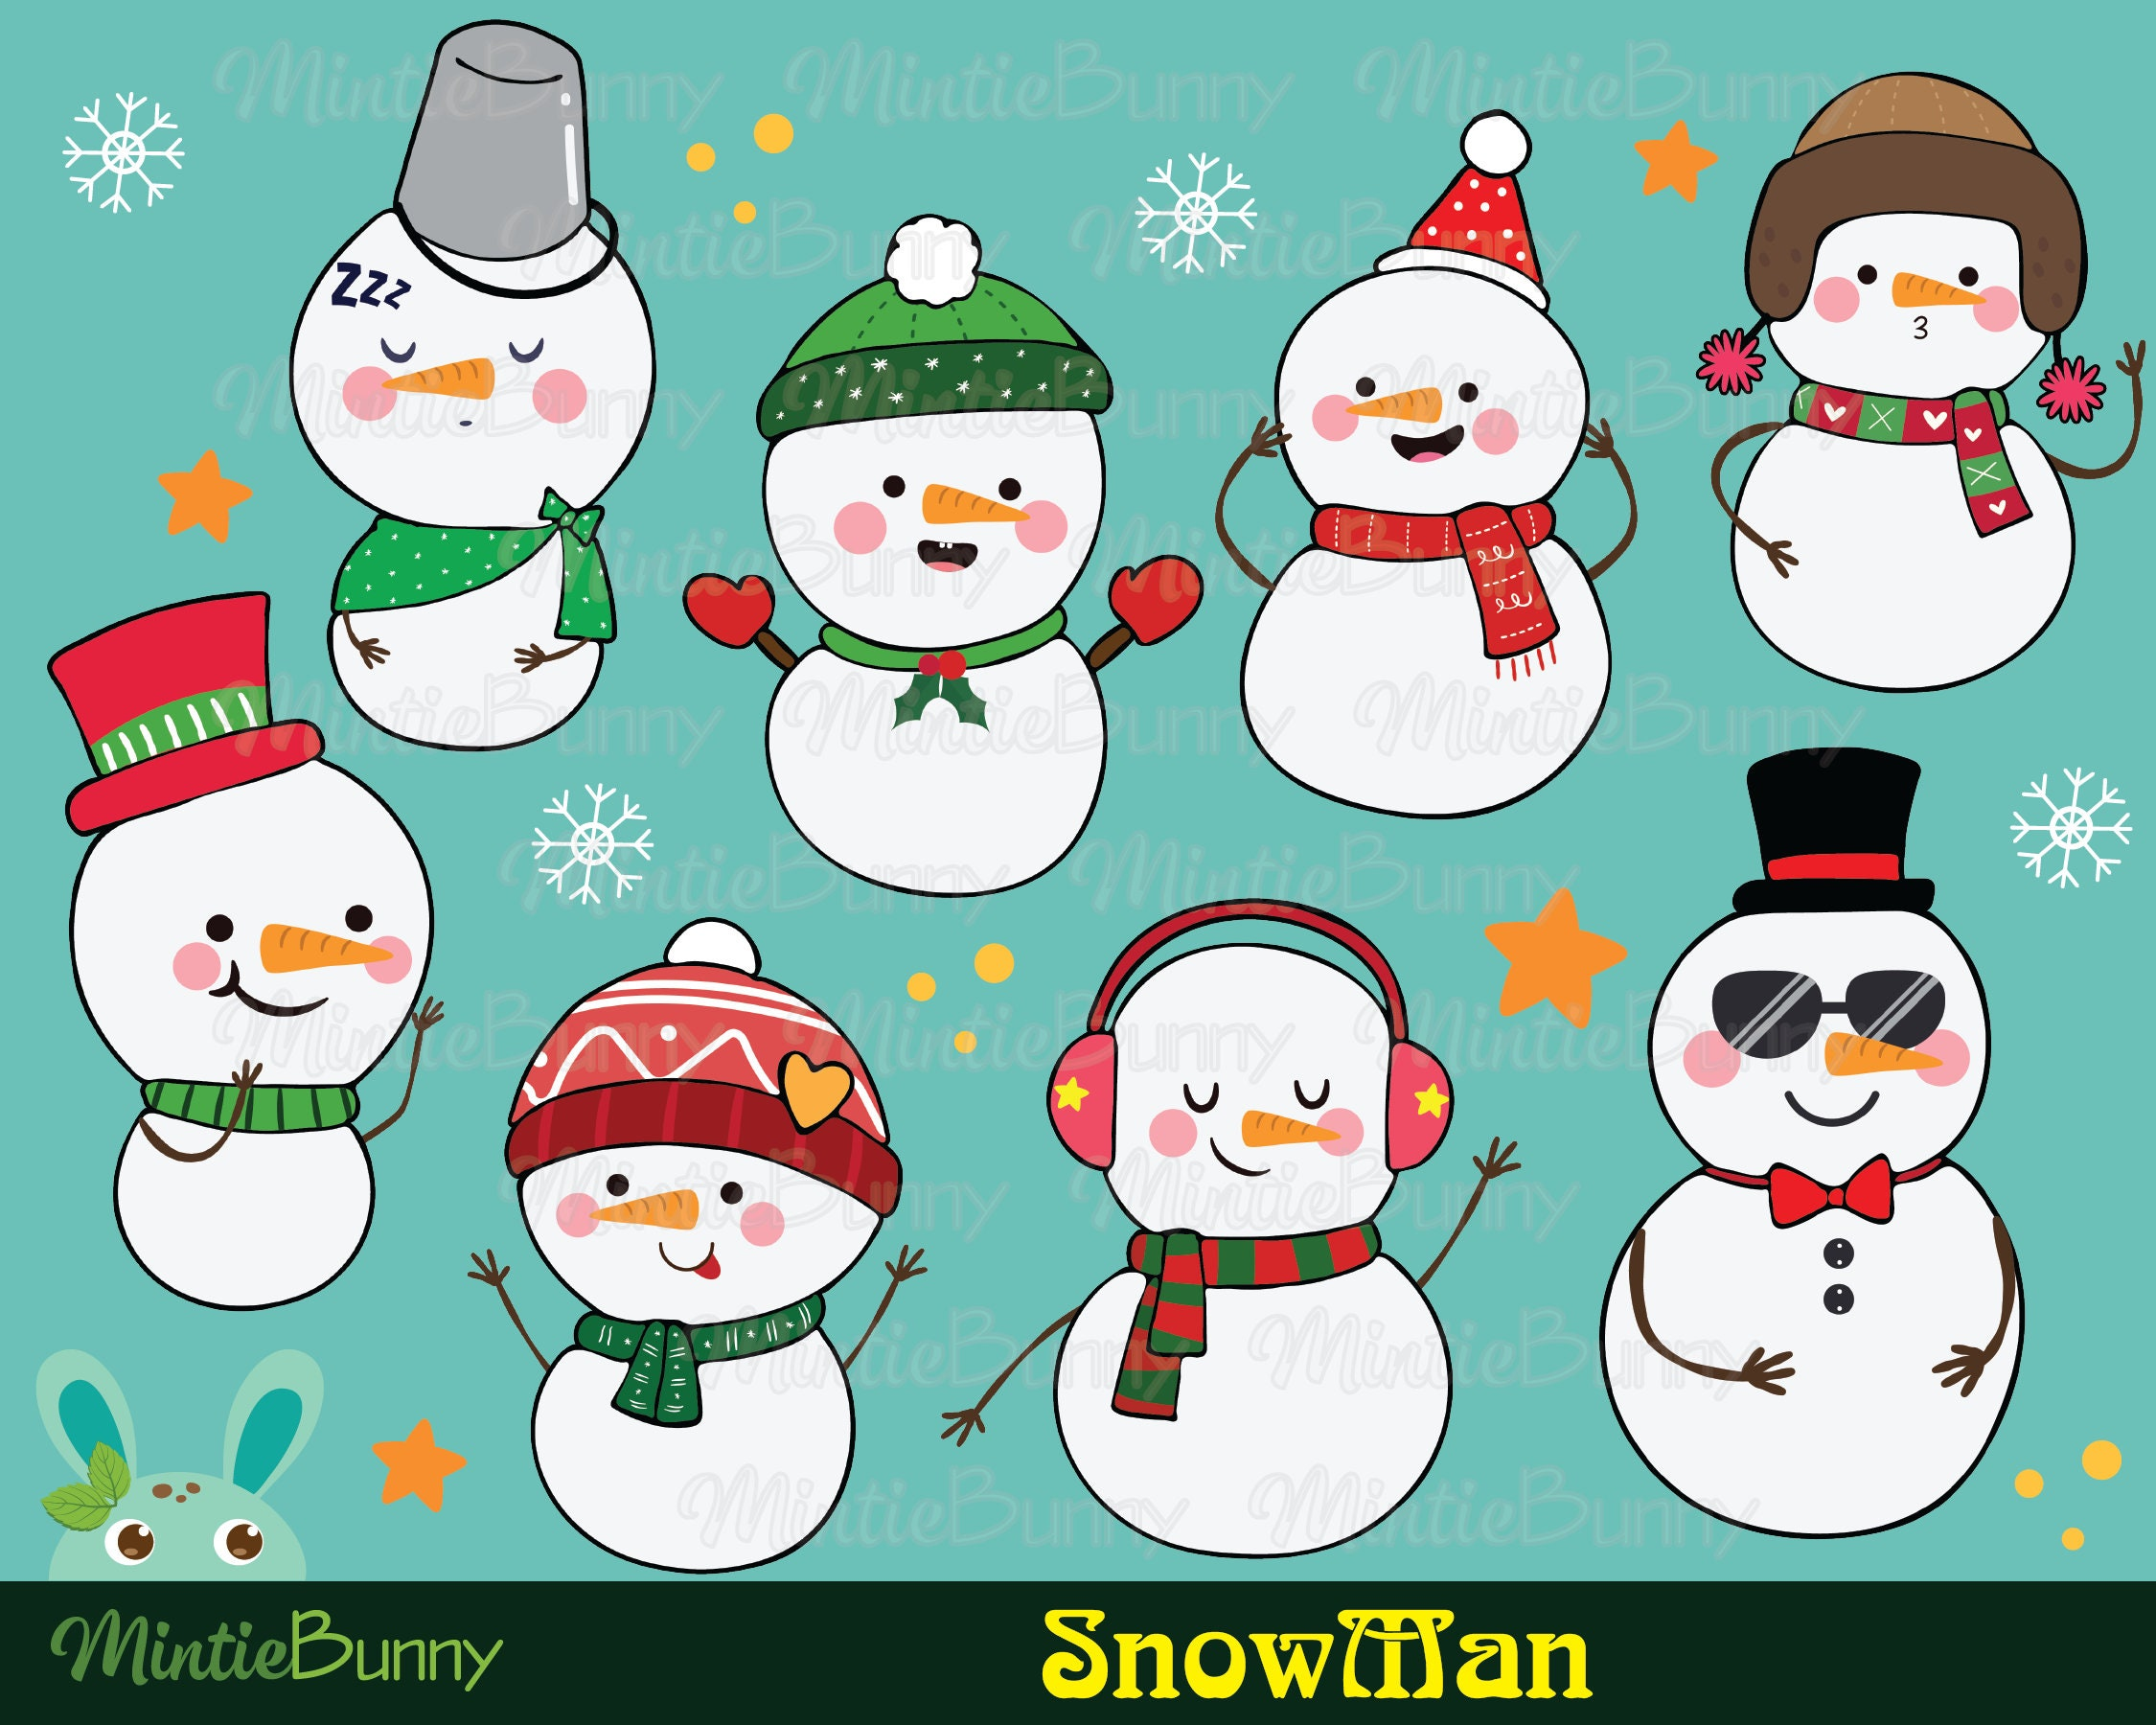 Free Snowman Image, Download Free Clip Art, Free Clip Art on Clipart Library